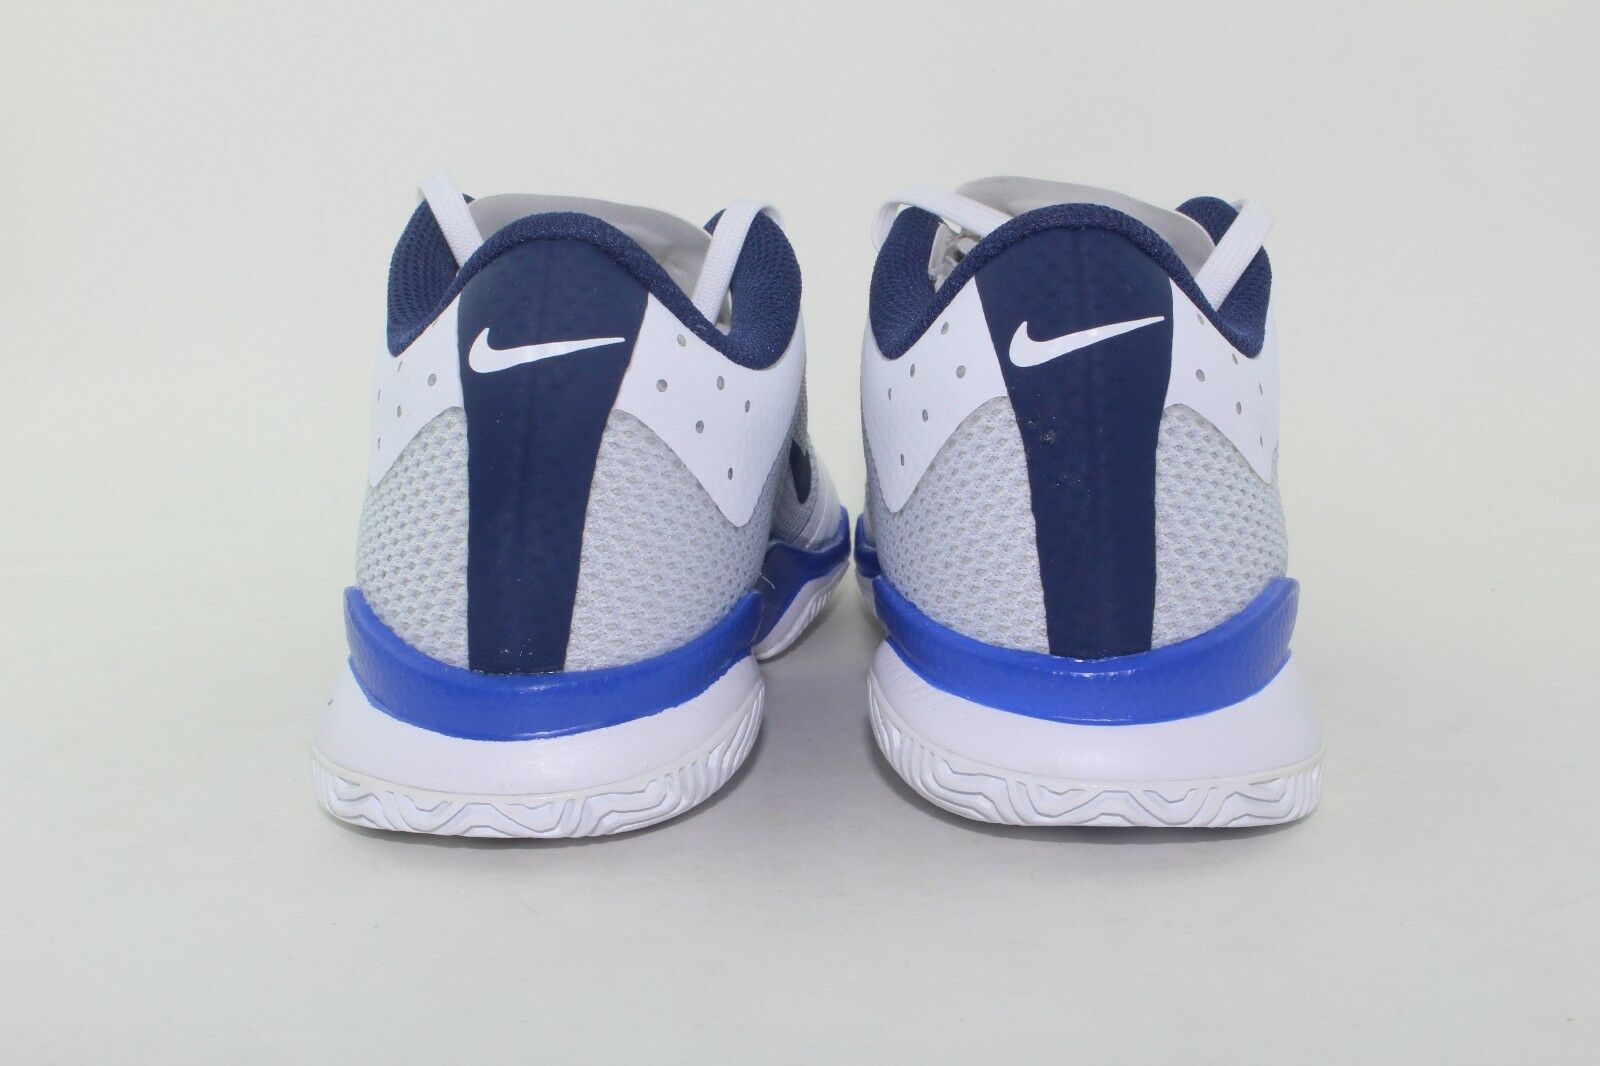 NIKE AIR ZOOM ULTRA BLUE Donna SIZE 10.0 NEW WHITE BLUE ULTRA C HION LIGHTWEIGHT 81bfc7